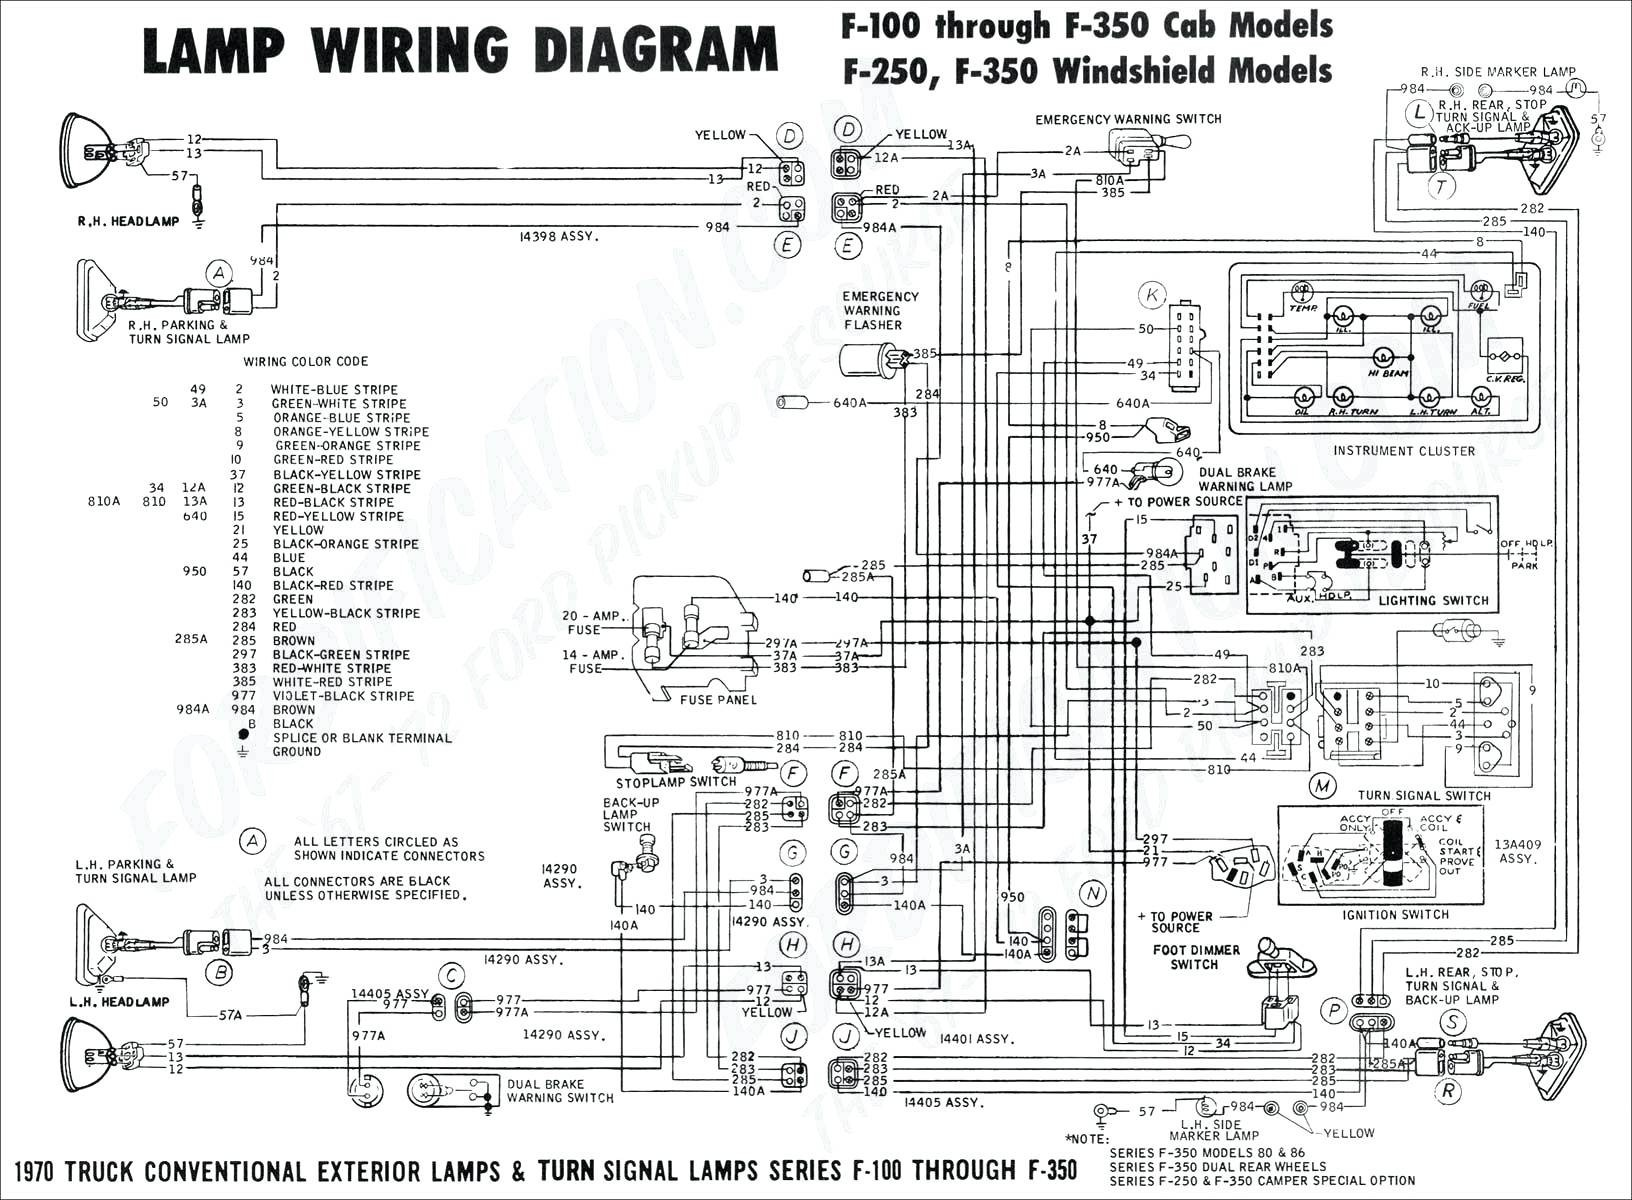 ford headlight switch wiring diagram awesome ford e 250 headlight switch wiring schematics example electrical of ford headlight switch wiring diagram 2000 mercury mountaineer headlight switch wiring diagram trusted